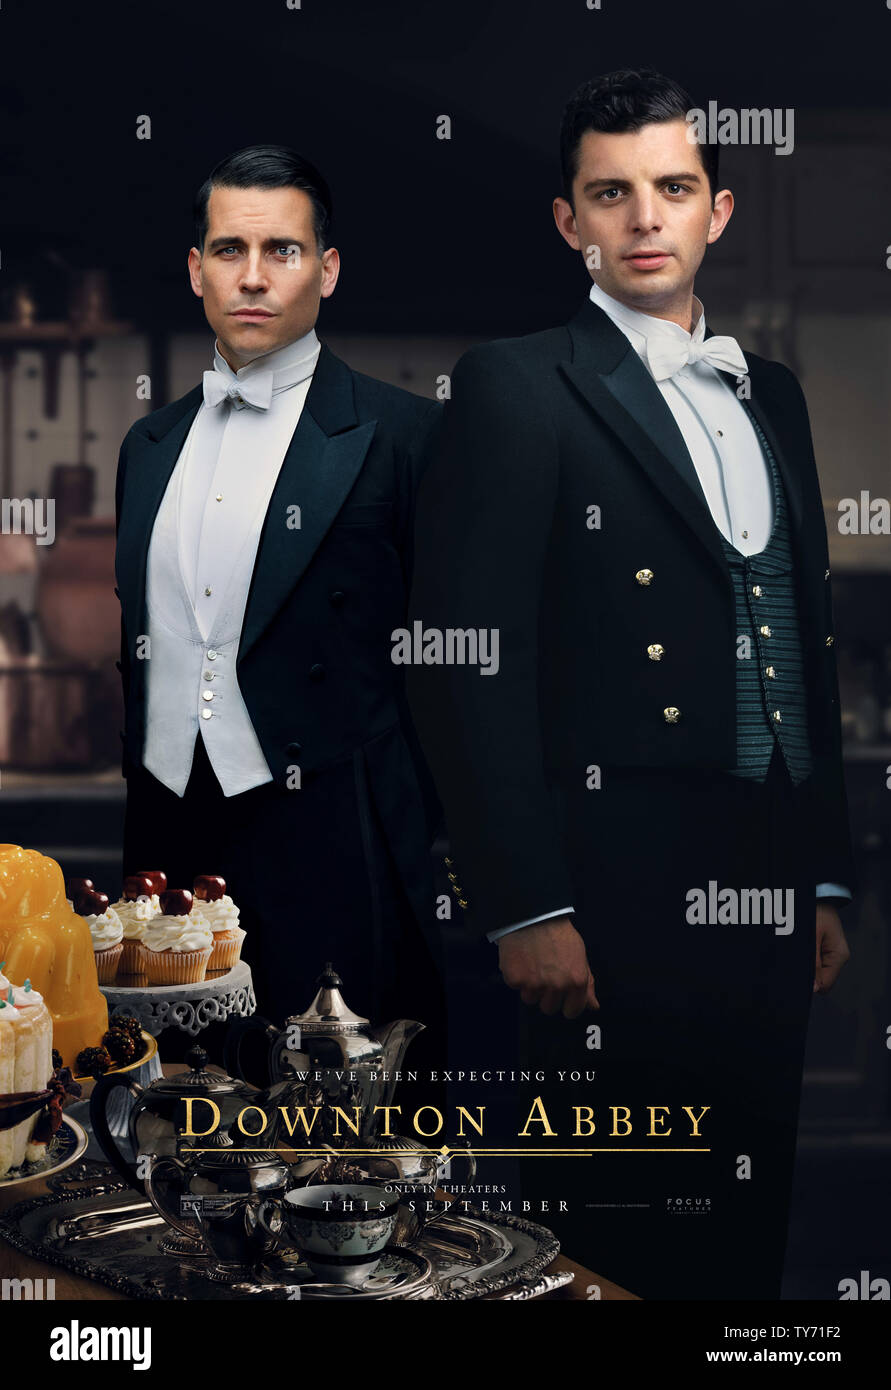 RELEASE DATE: September 20, 2019 TITLE: Downton Abbey STUDIO: Focus Features DIRECTOR: Michael Engler PLOT: Adapted from the hit TV series Downton Abbey that tells the story of the Crawley family, a wealthy owner of a large estate in the English countryside in the early 20th century. STARRING: ROBERT JAMES-COLLIER as Thomas Barrow, MICHAEL FOX as Andy. (Credit Image: © Focus Features/Entertainment Pictures) - Stock Image